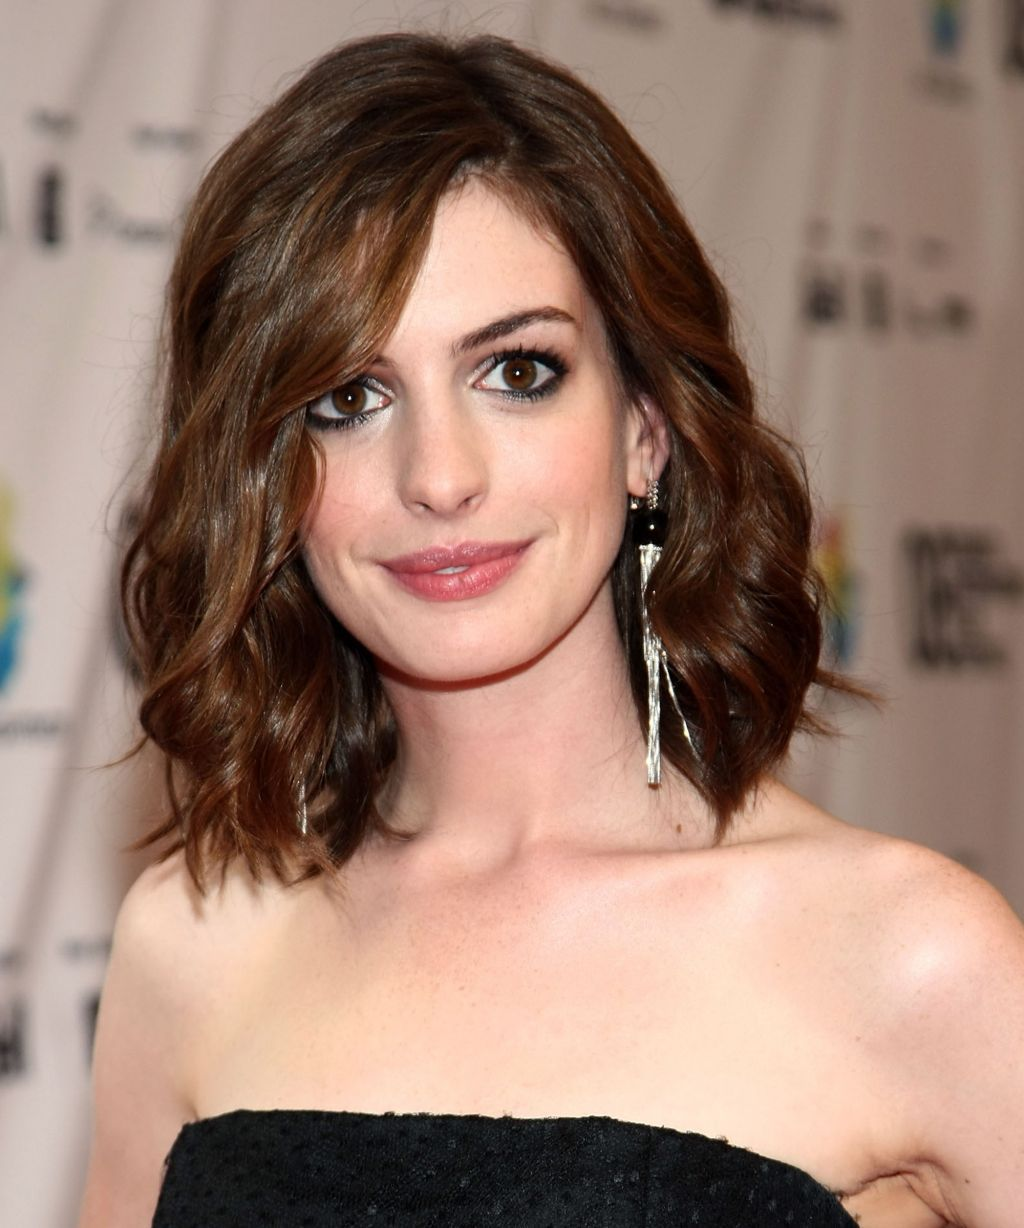 You Won T Believe How Much Anne Hathaway Has Changed Anne Hathaway Hair Anne Hathaway Blonde Anne Hathaway Haircut